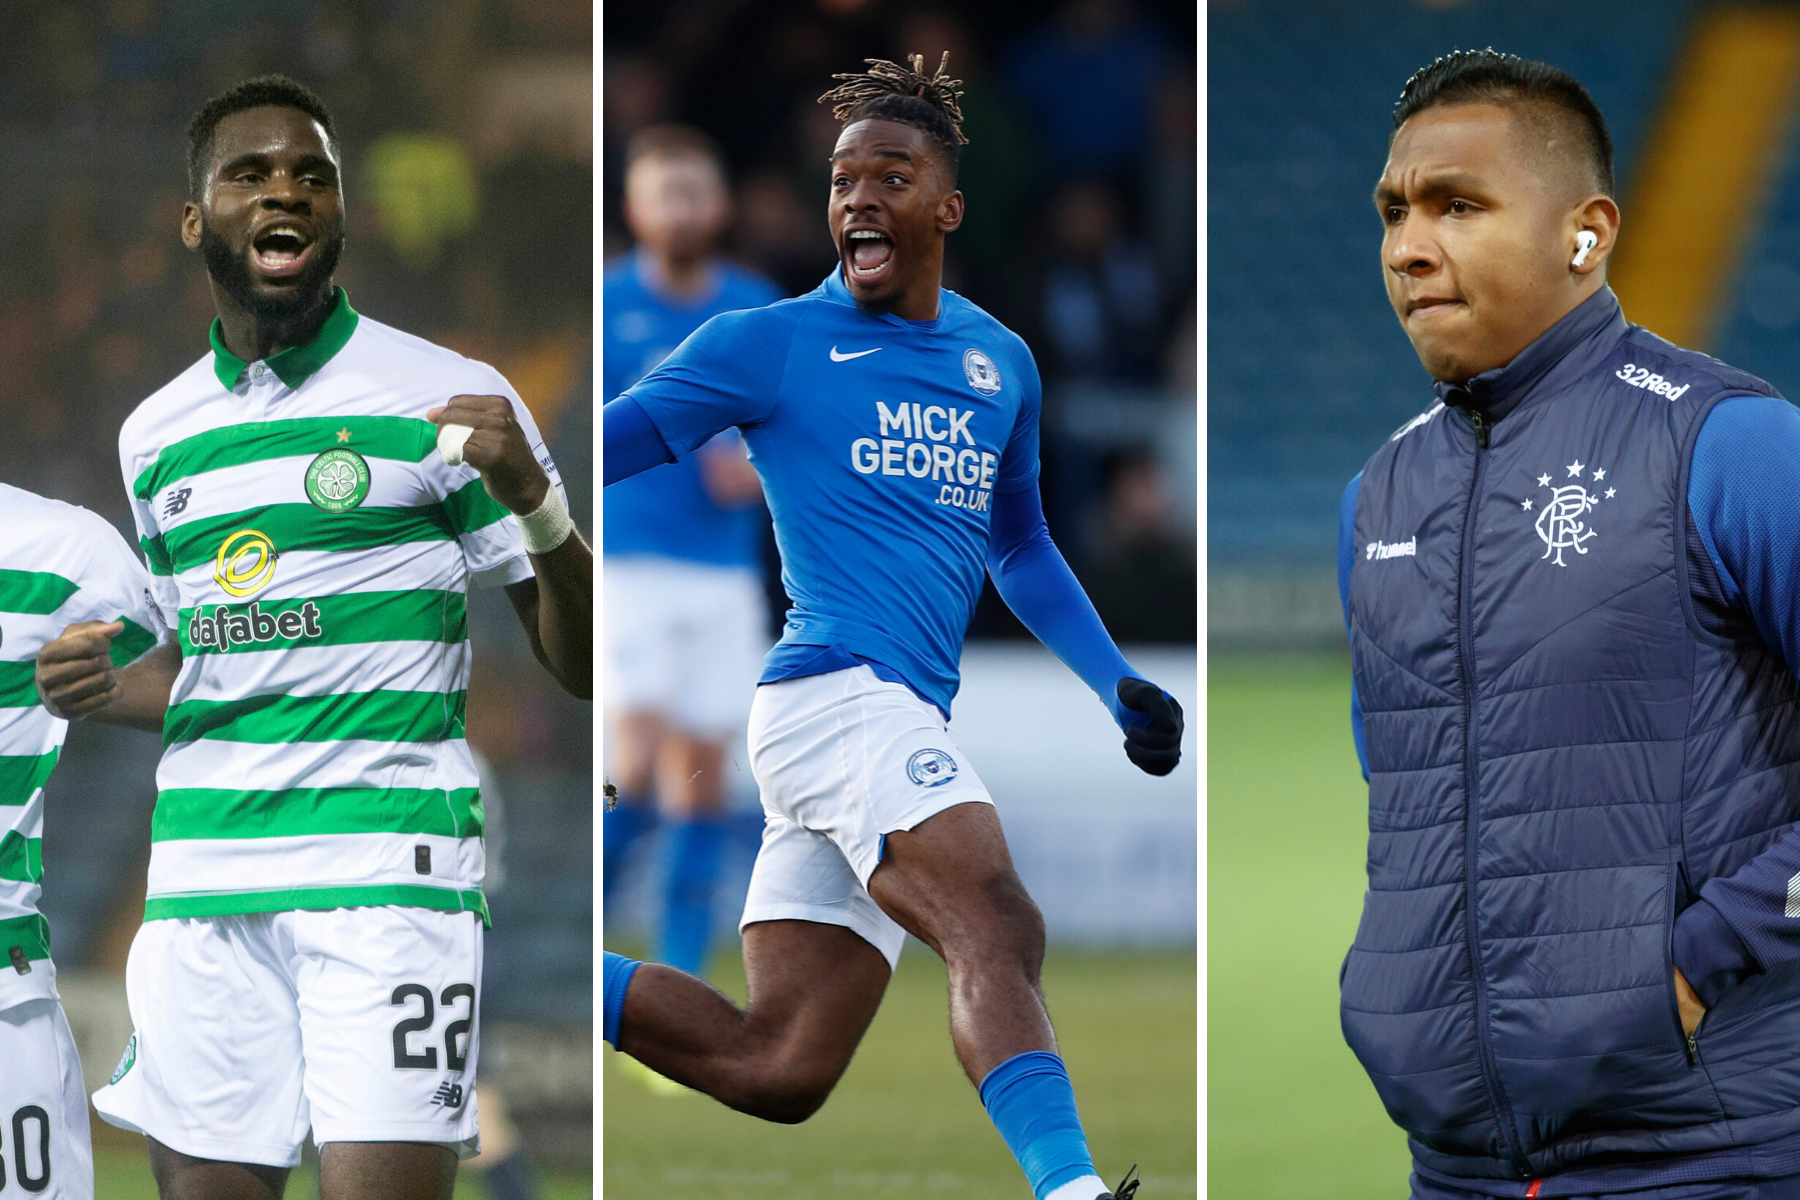 Scottish transfer news LIVE: Celtic and Rangers' pursuit of Ivan Toney latest and Hibs update on Kamberi